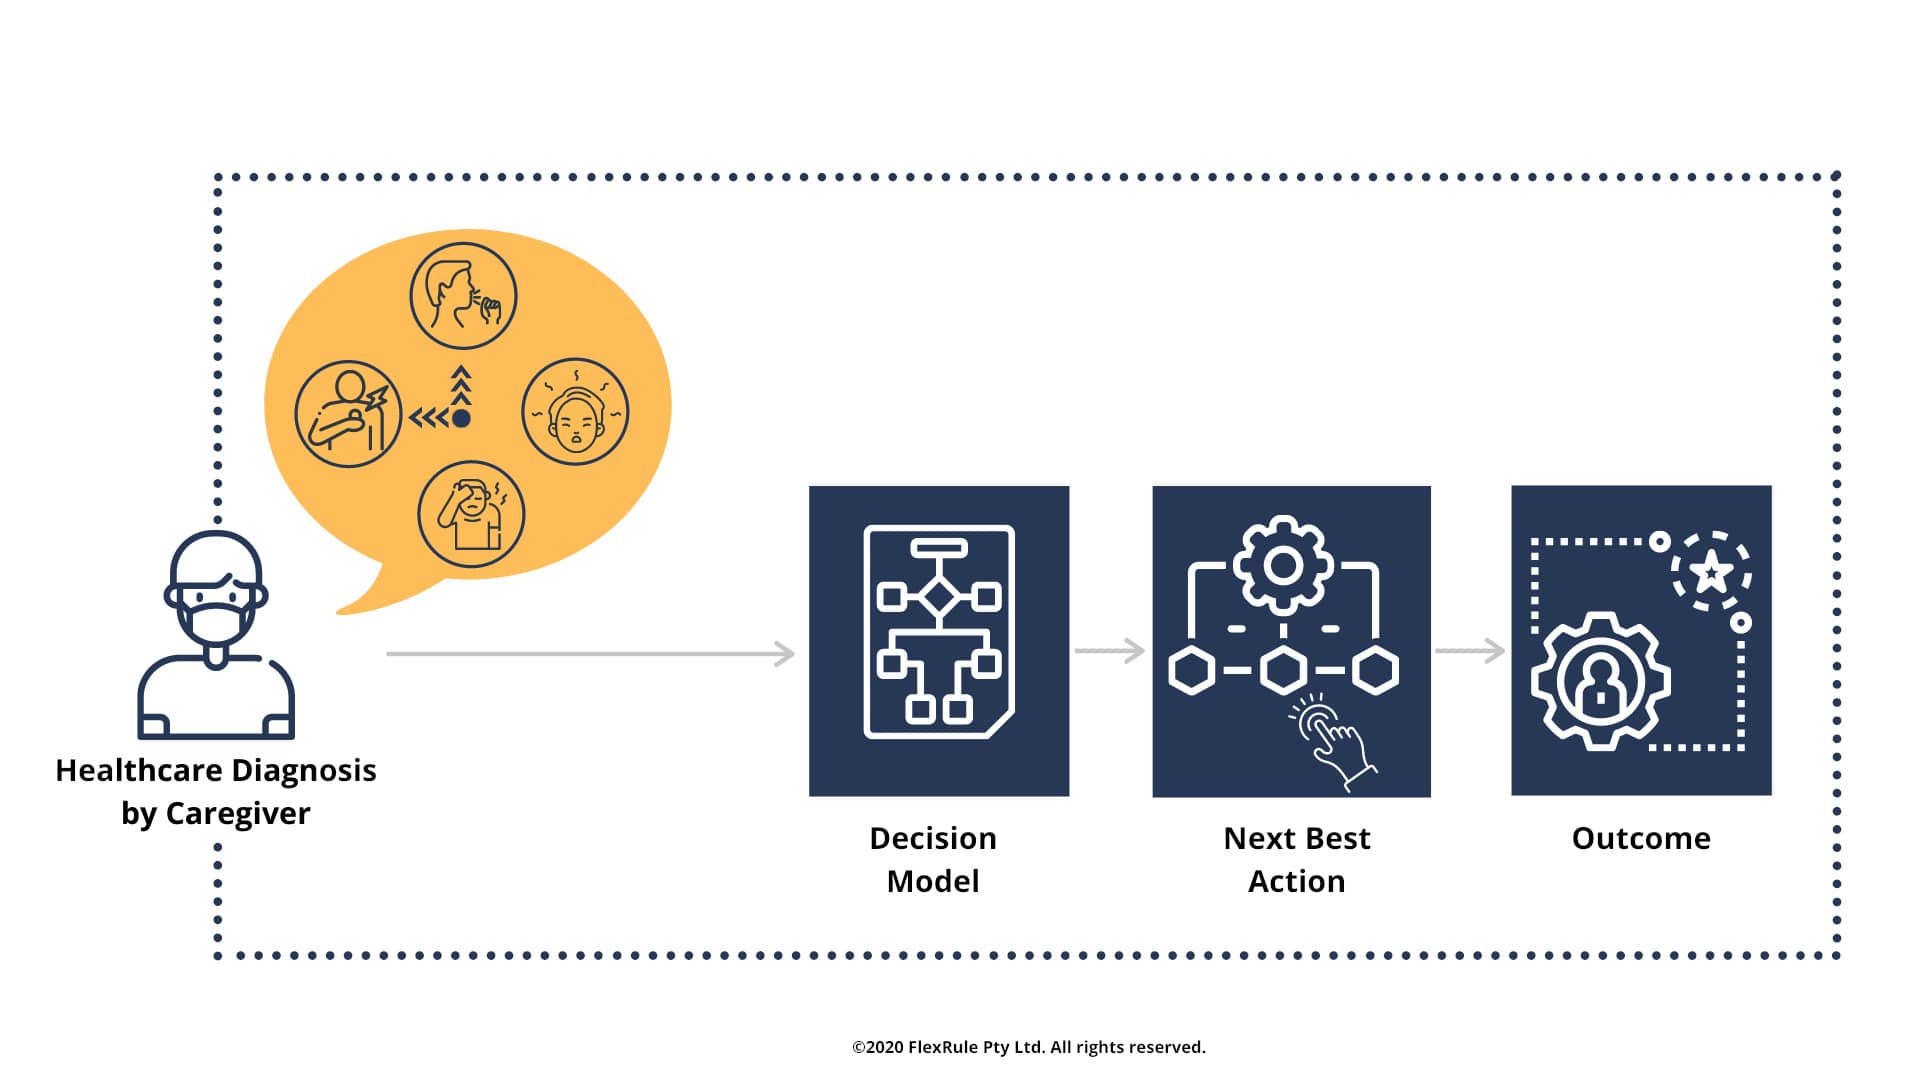 Healthcare transformation using next-best-action decision